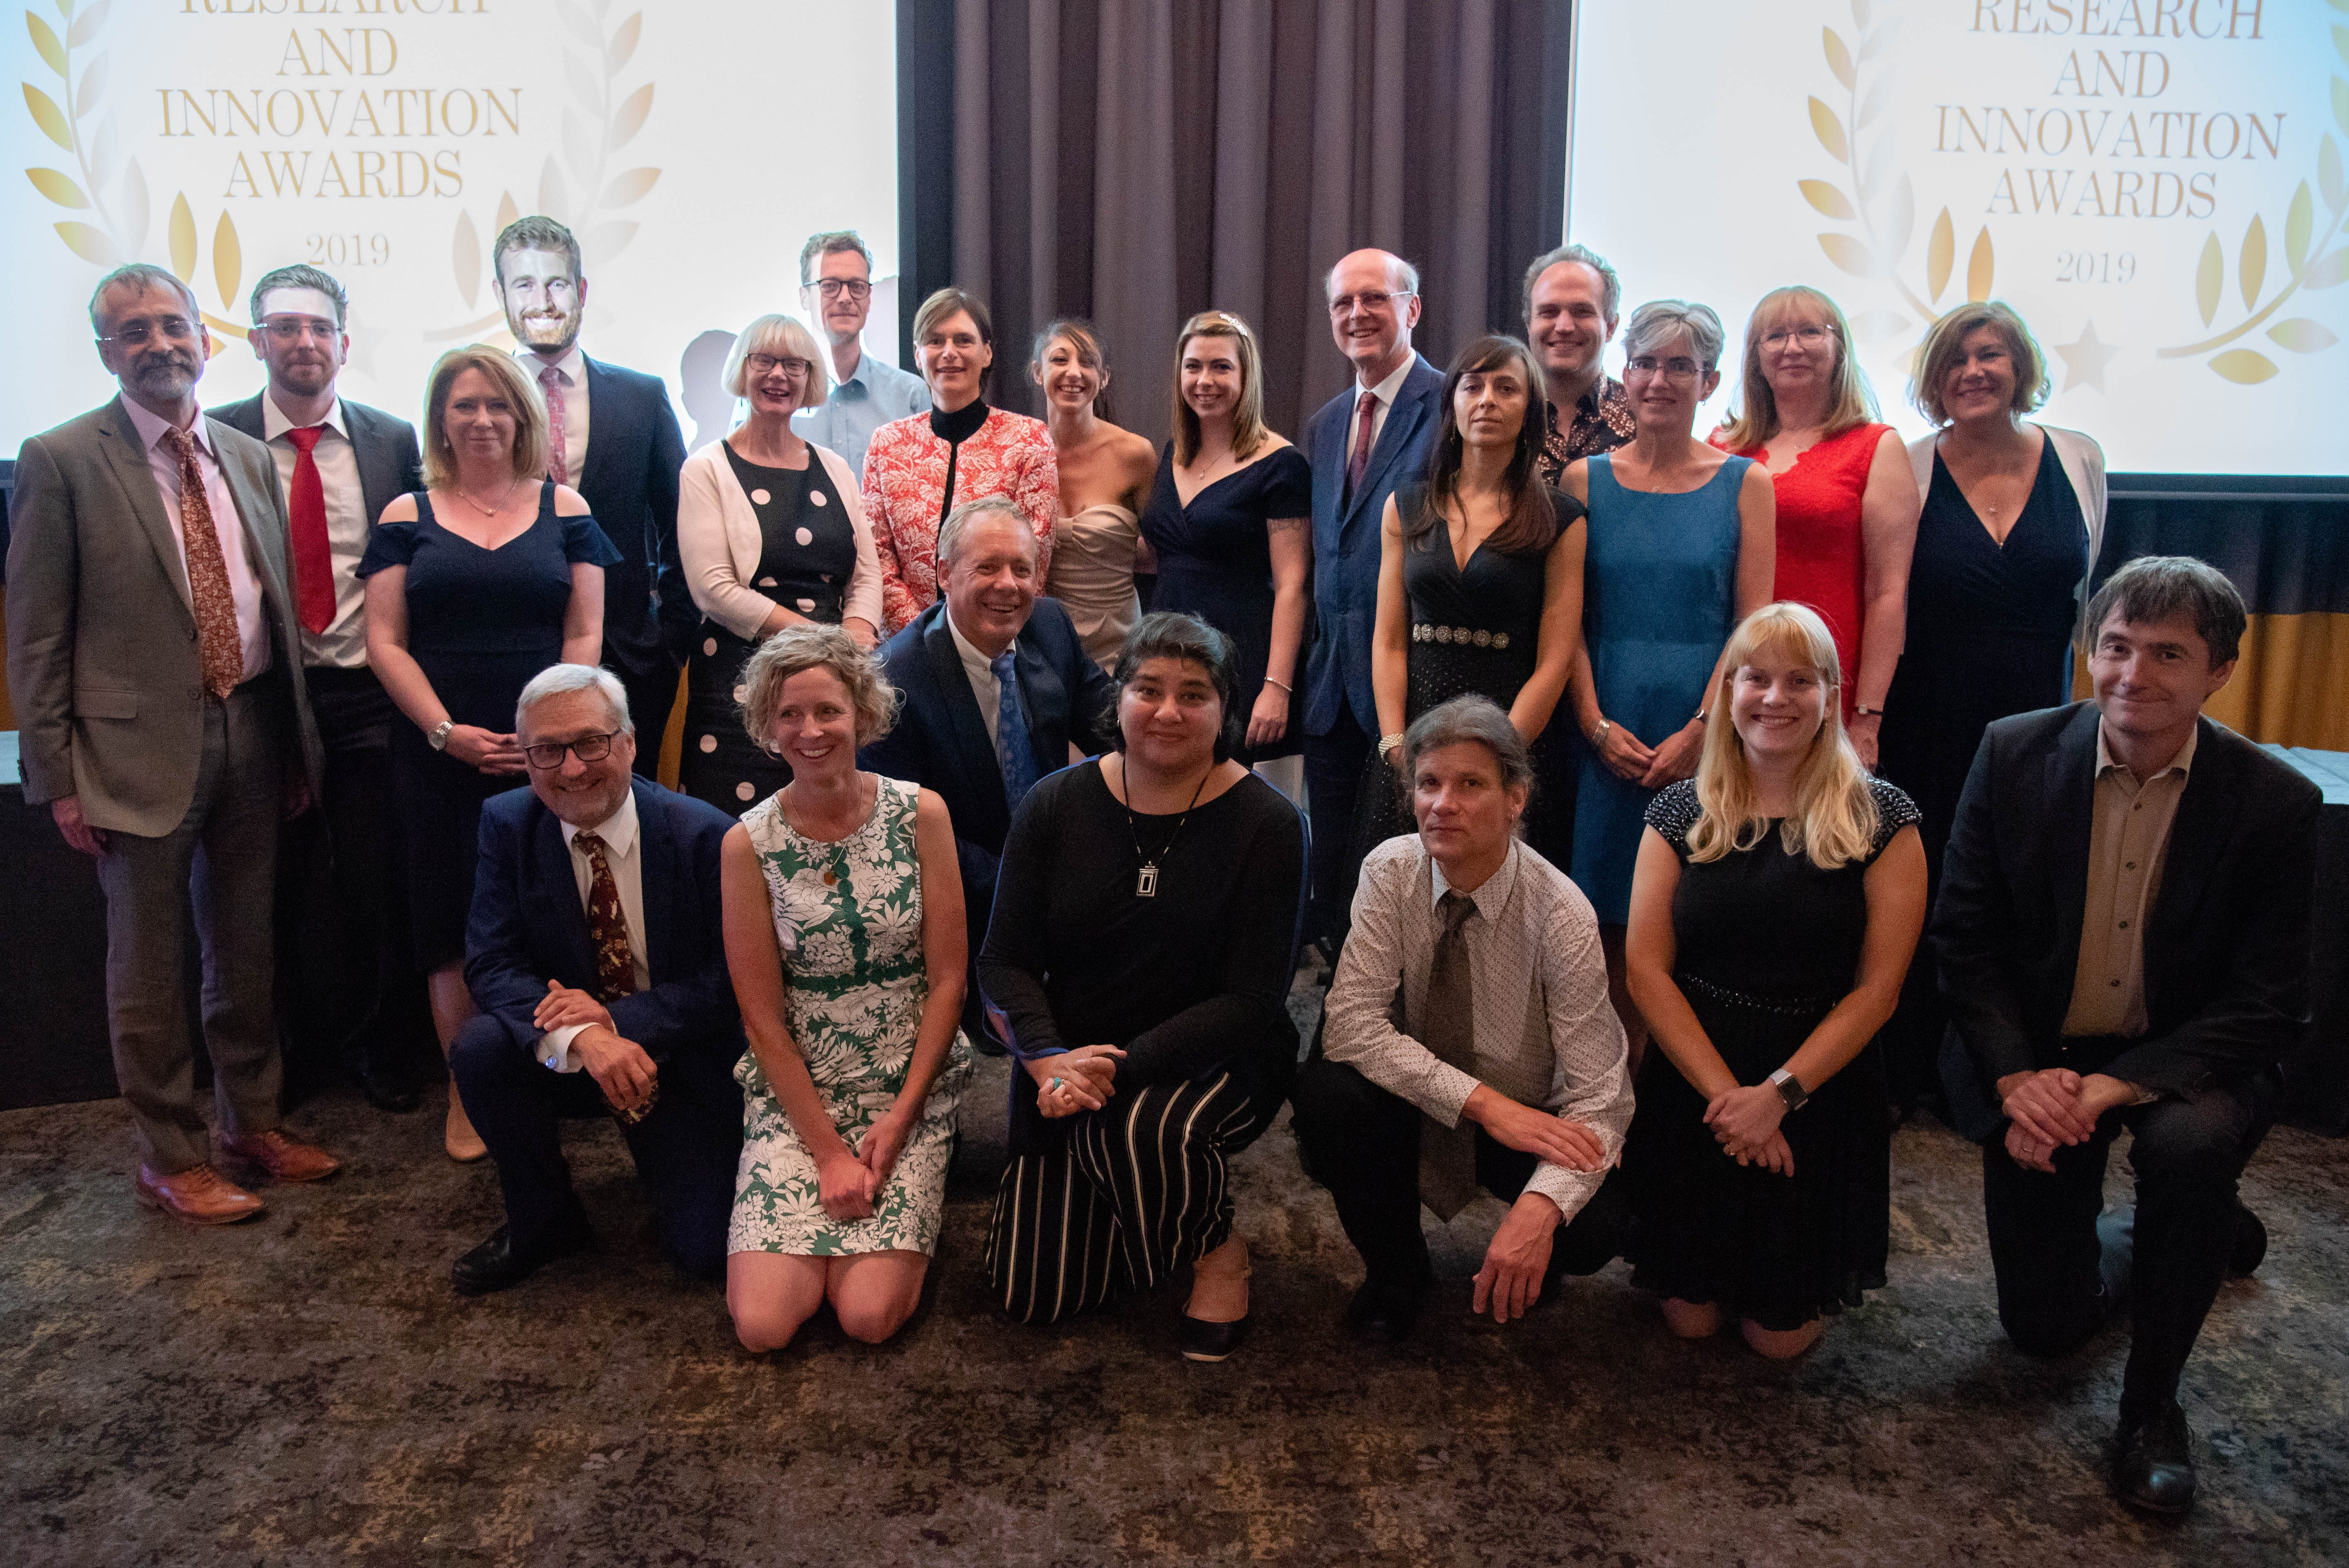 Teaching, Research and Innovation Awards 2019